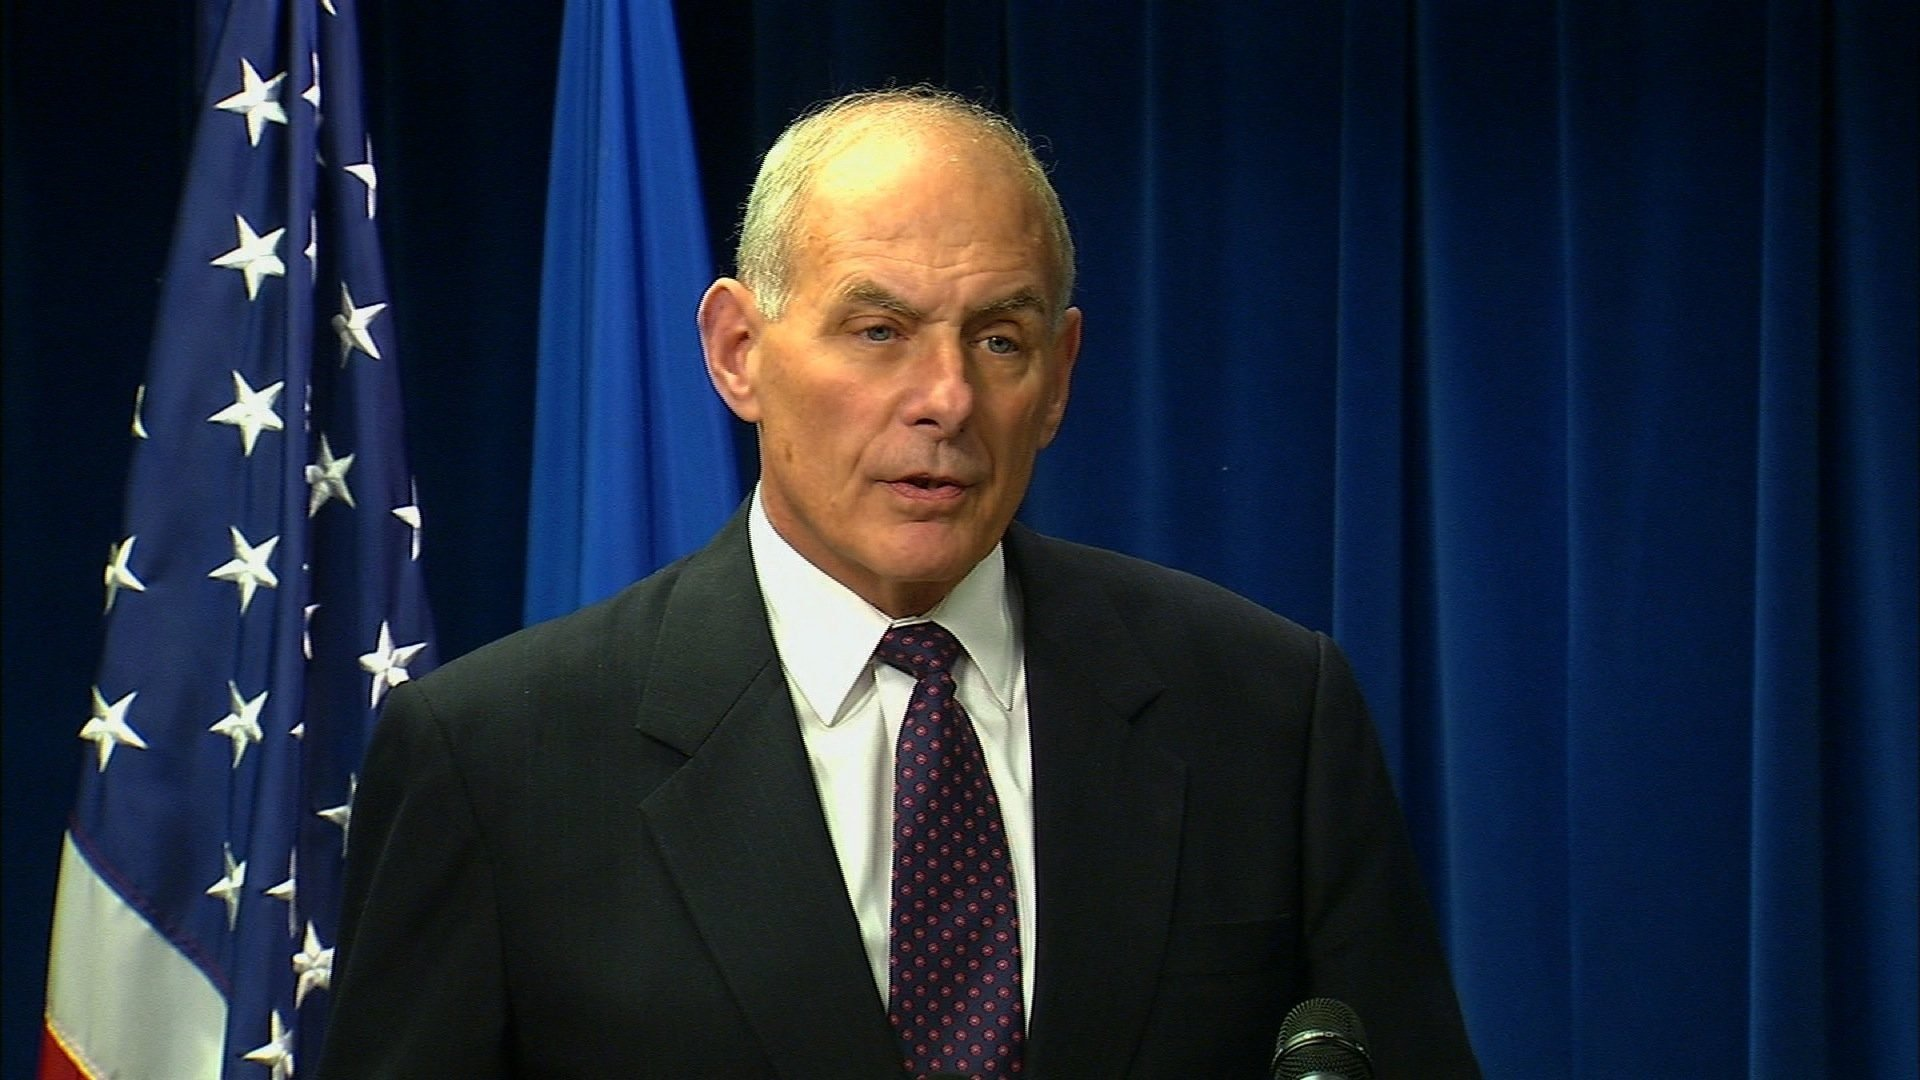 Illegal migration at United States border at lowest point in 17 years- Kelly